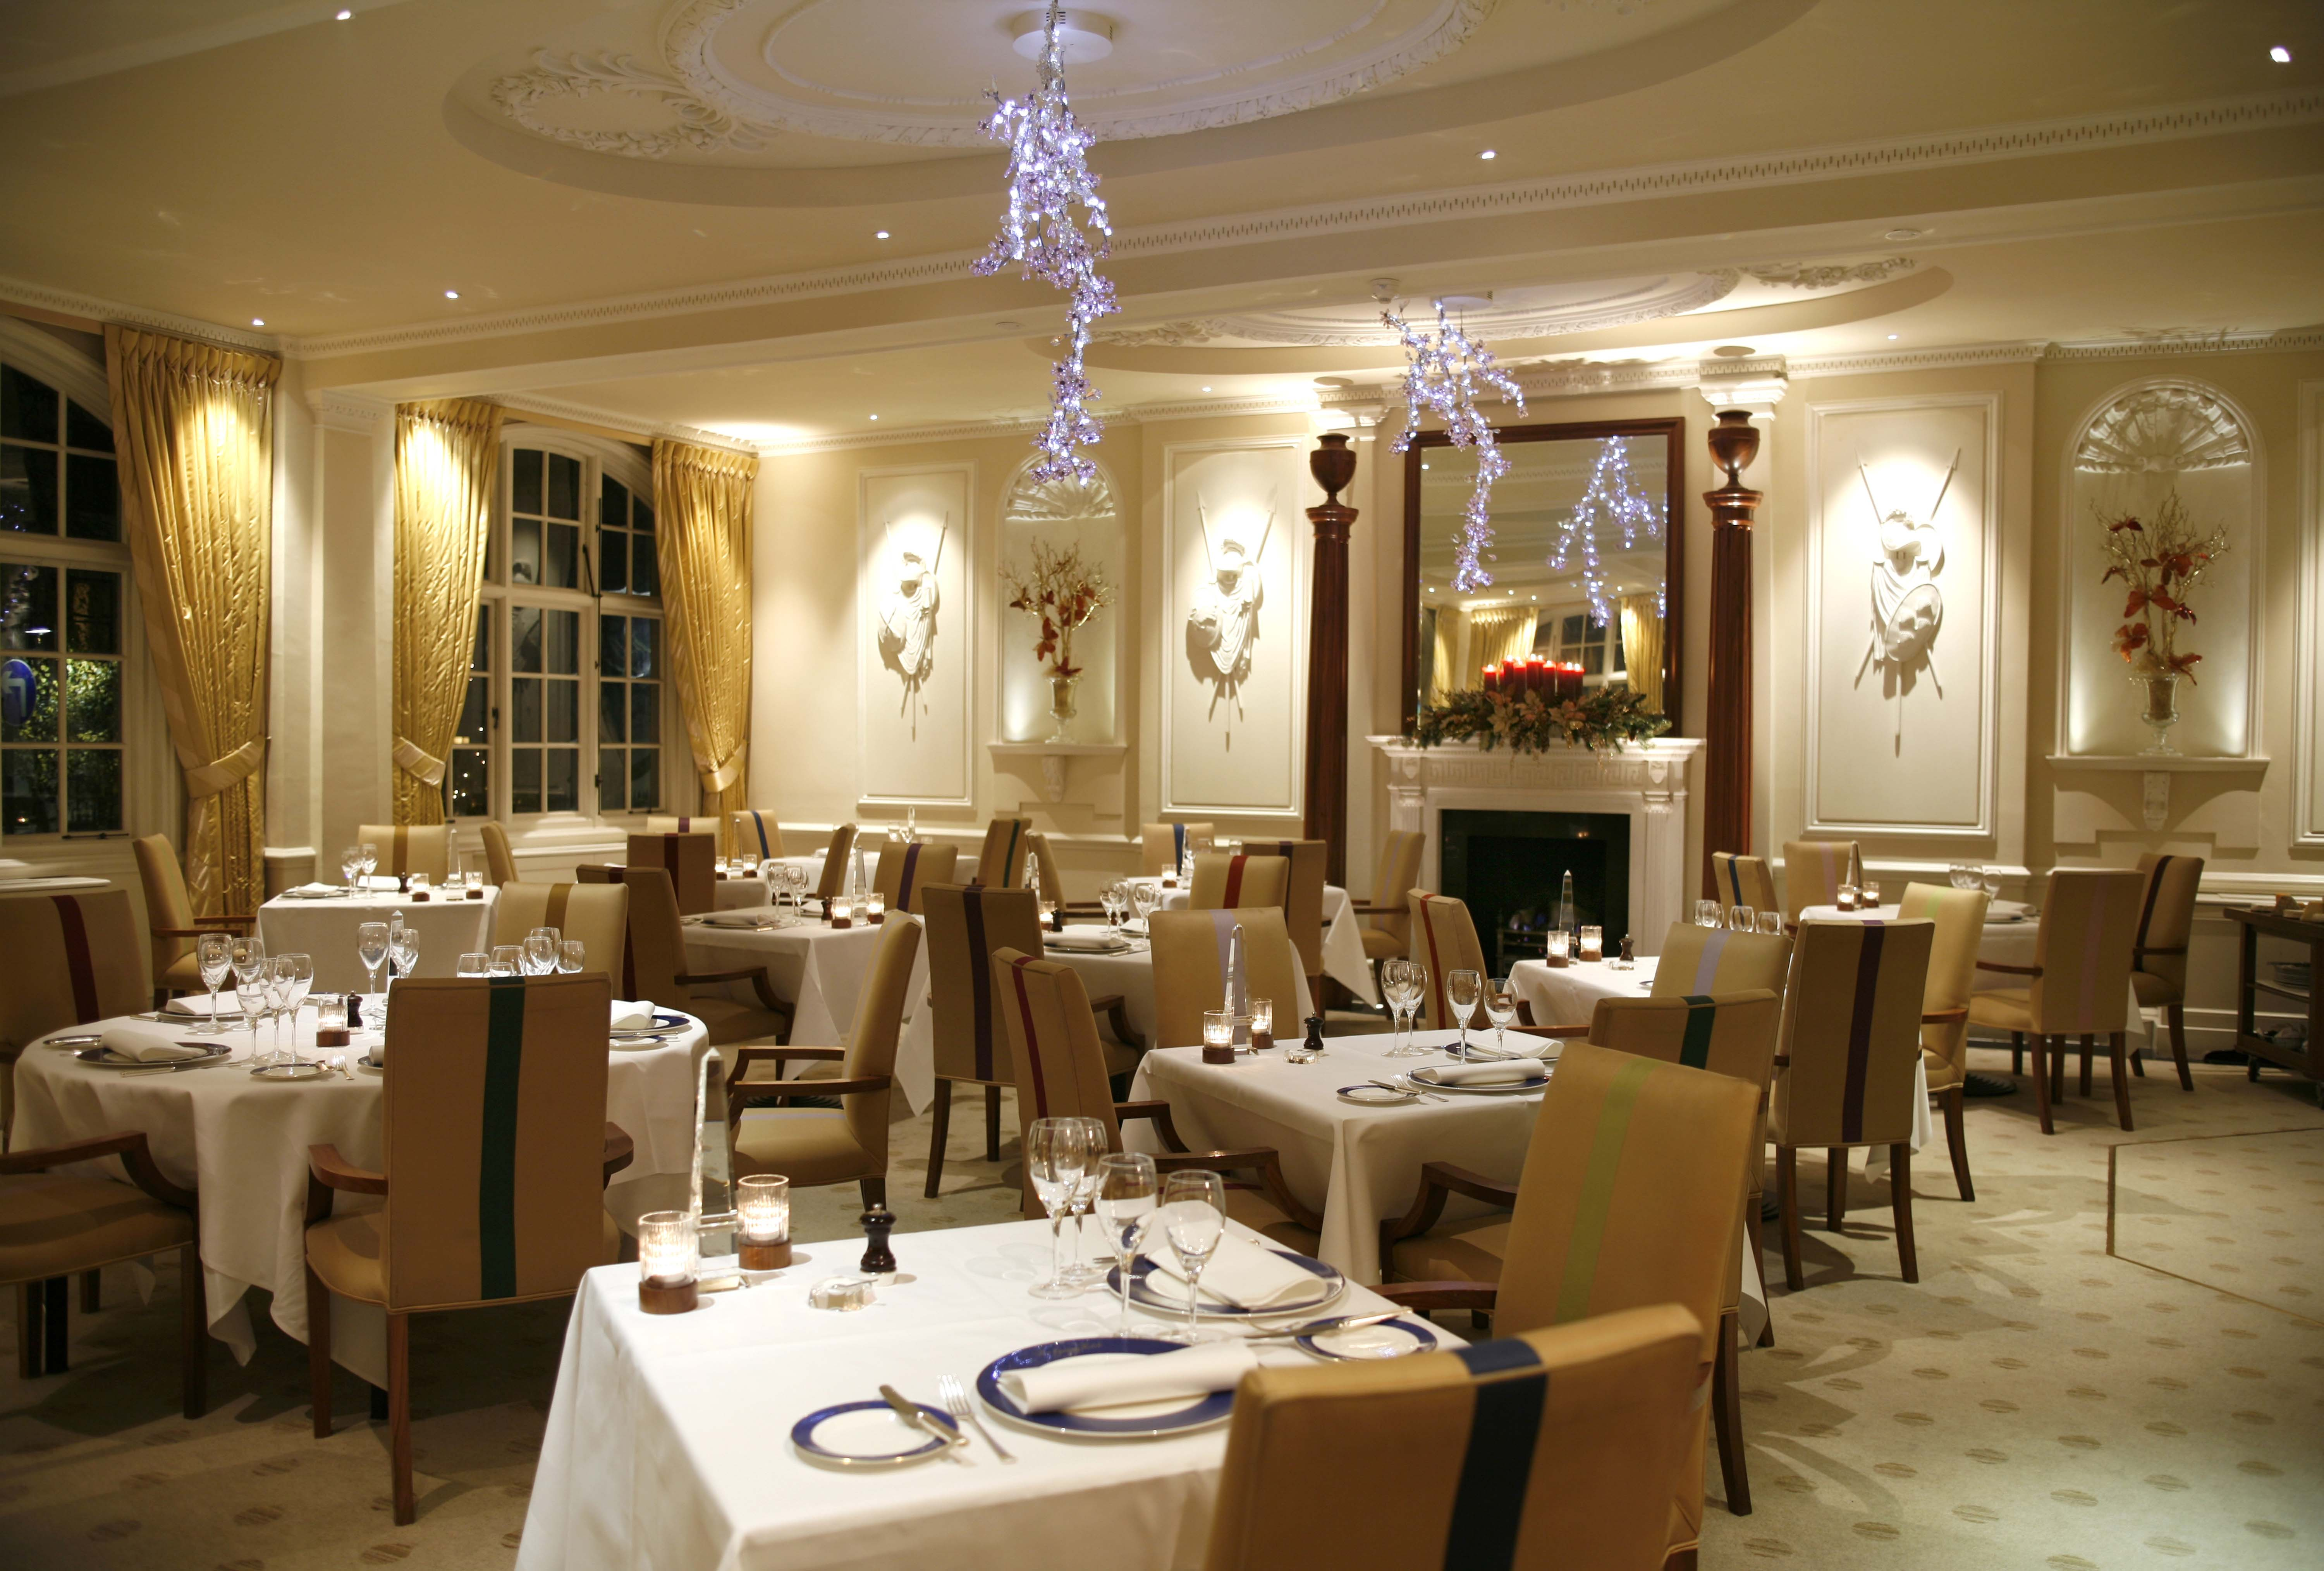 10 best restaurants in london to go for thanksgiving the for Dining room suites images